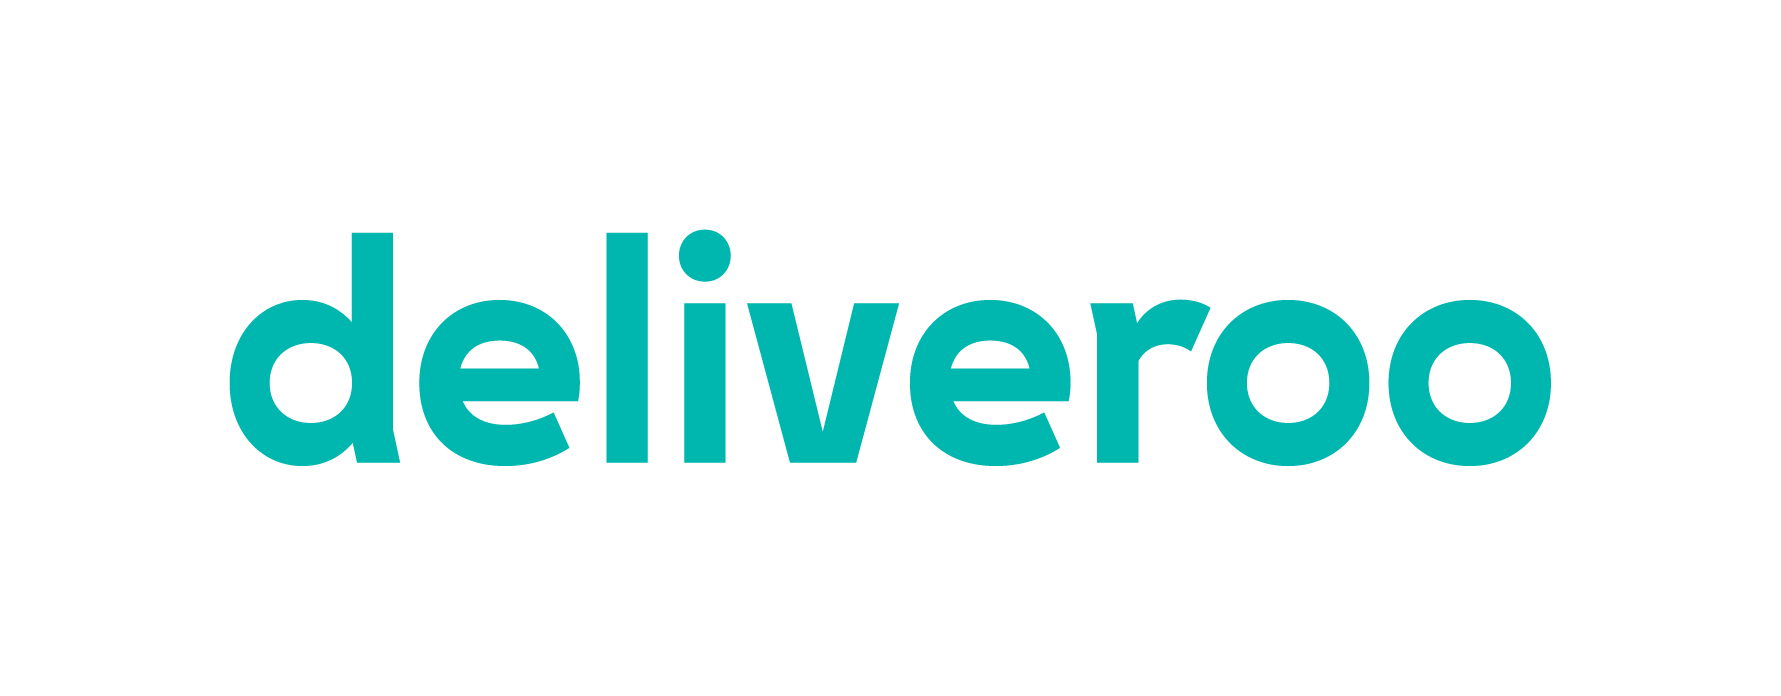 Deliveroo unveils new kangaroo as part of rebrand.